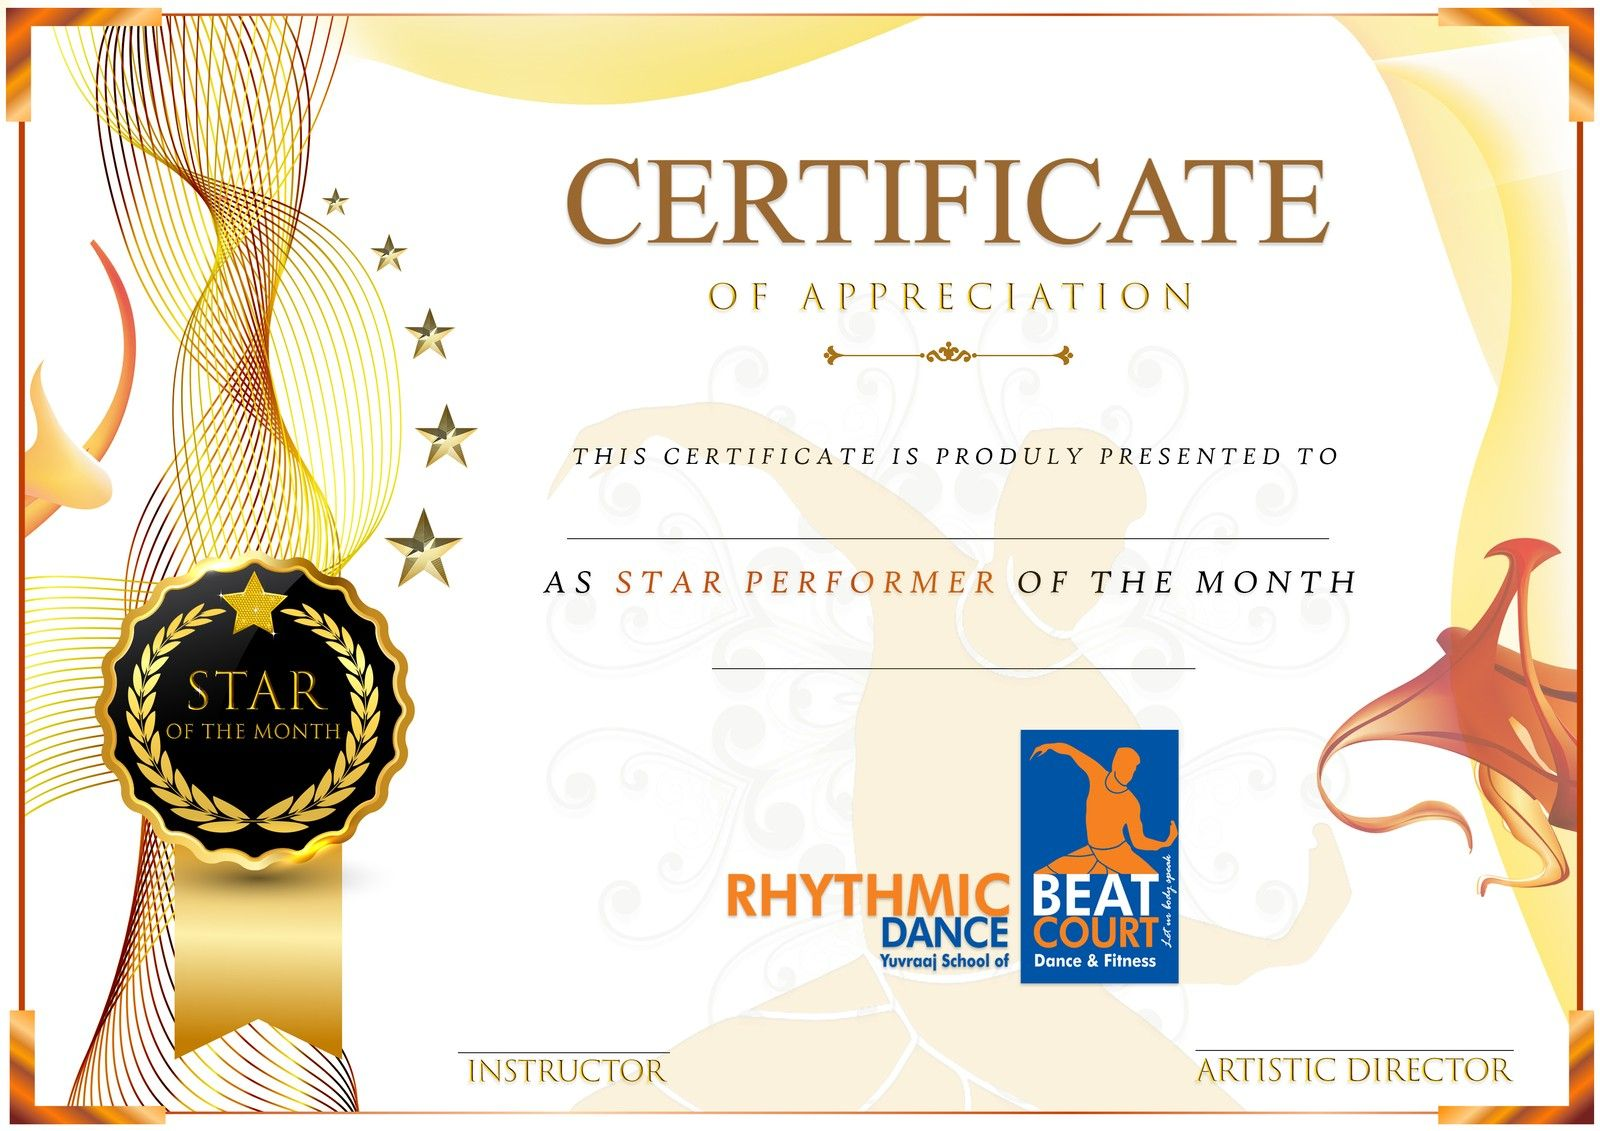 Performer Of The Month Certificate Calep Midnightpig Co In Star Performer Certificate Certificate Templates Professional Templates Gift Certificate Template Film festival award certificate template